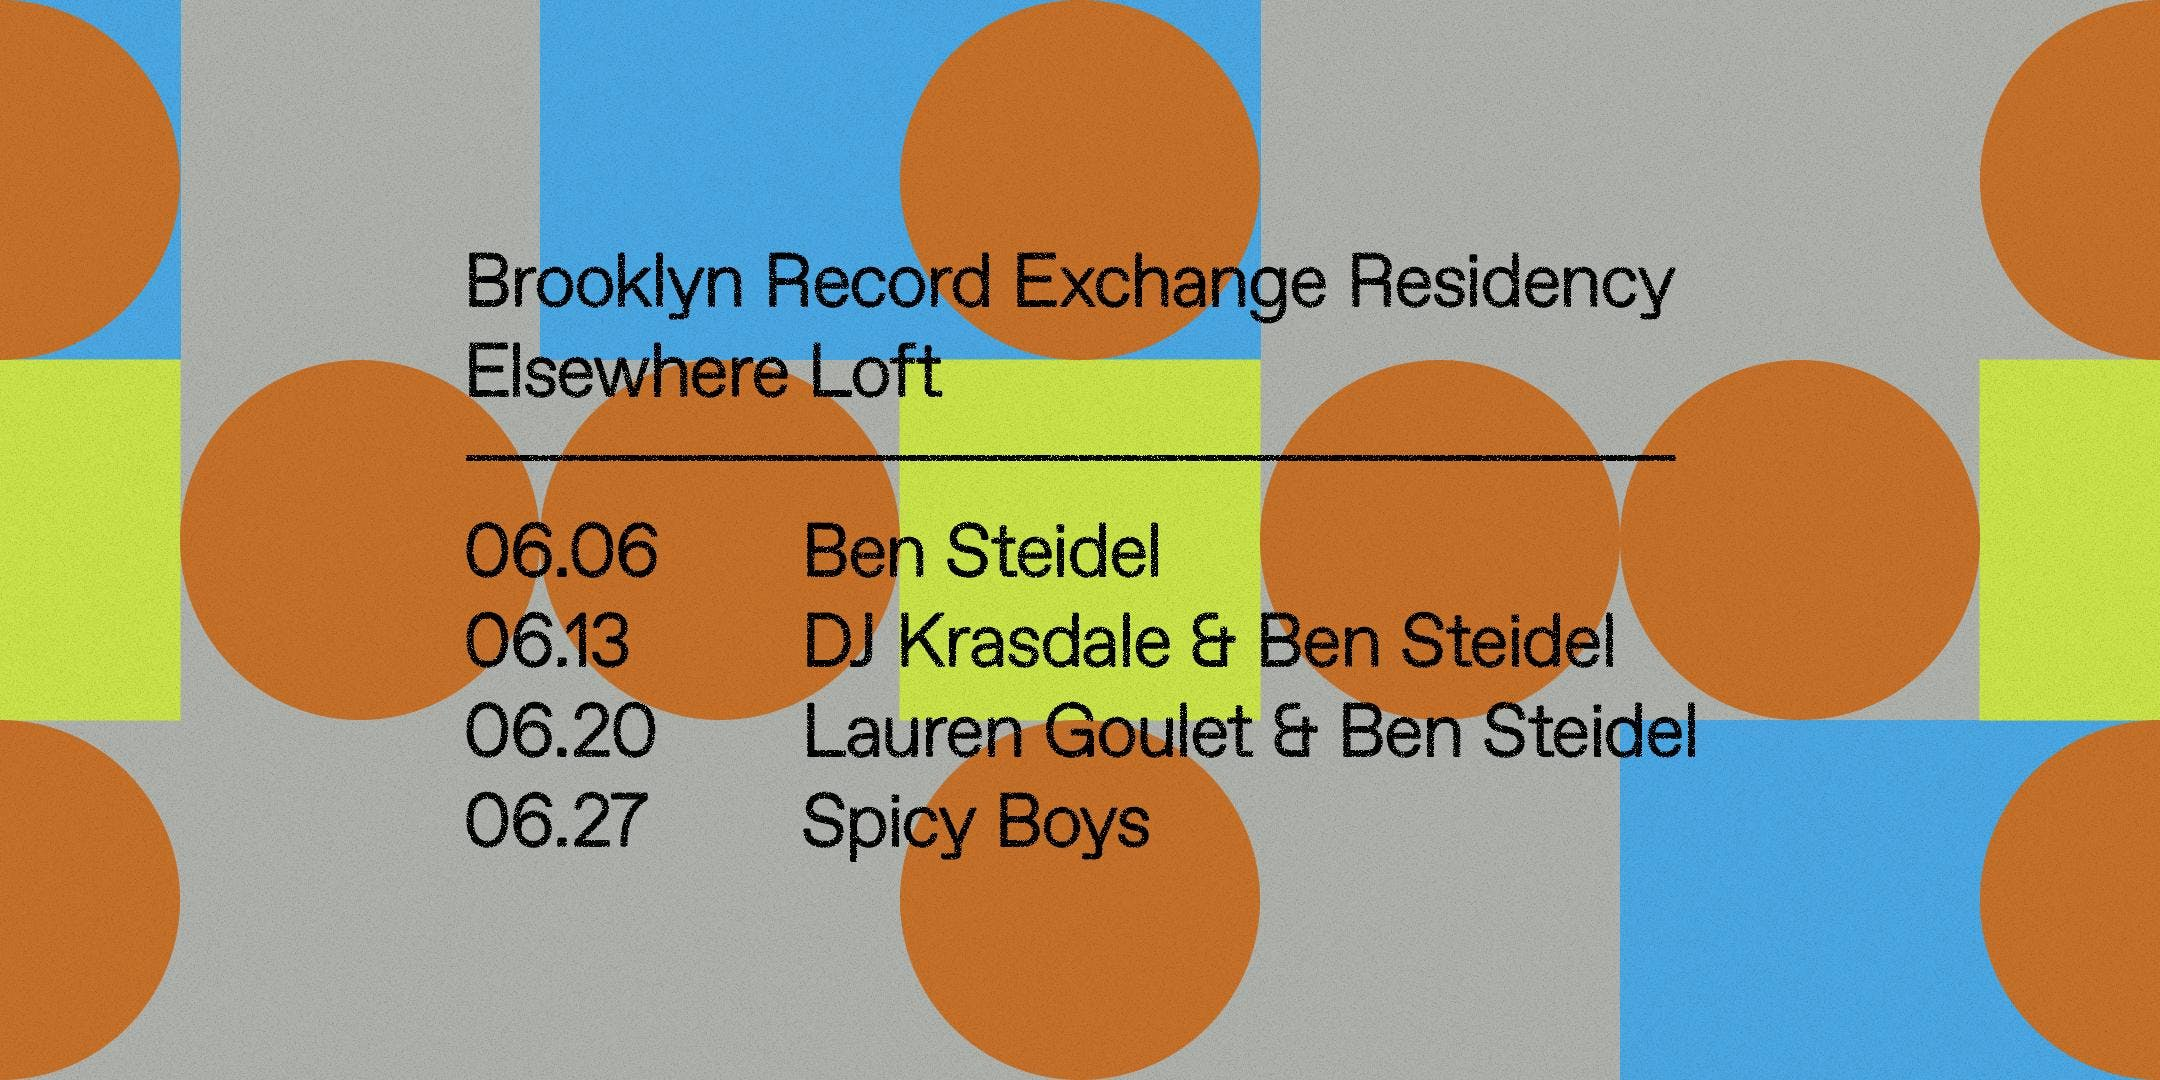 Brooklyn Record Exchange Residency w/ DJ Krasdale & Ben Steidel